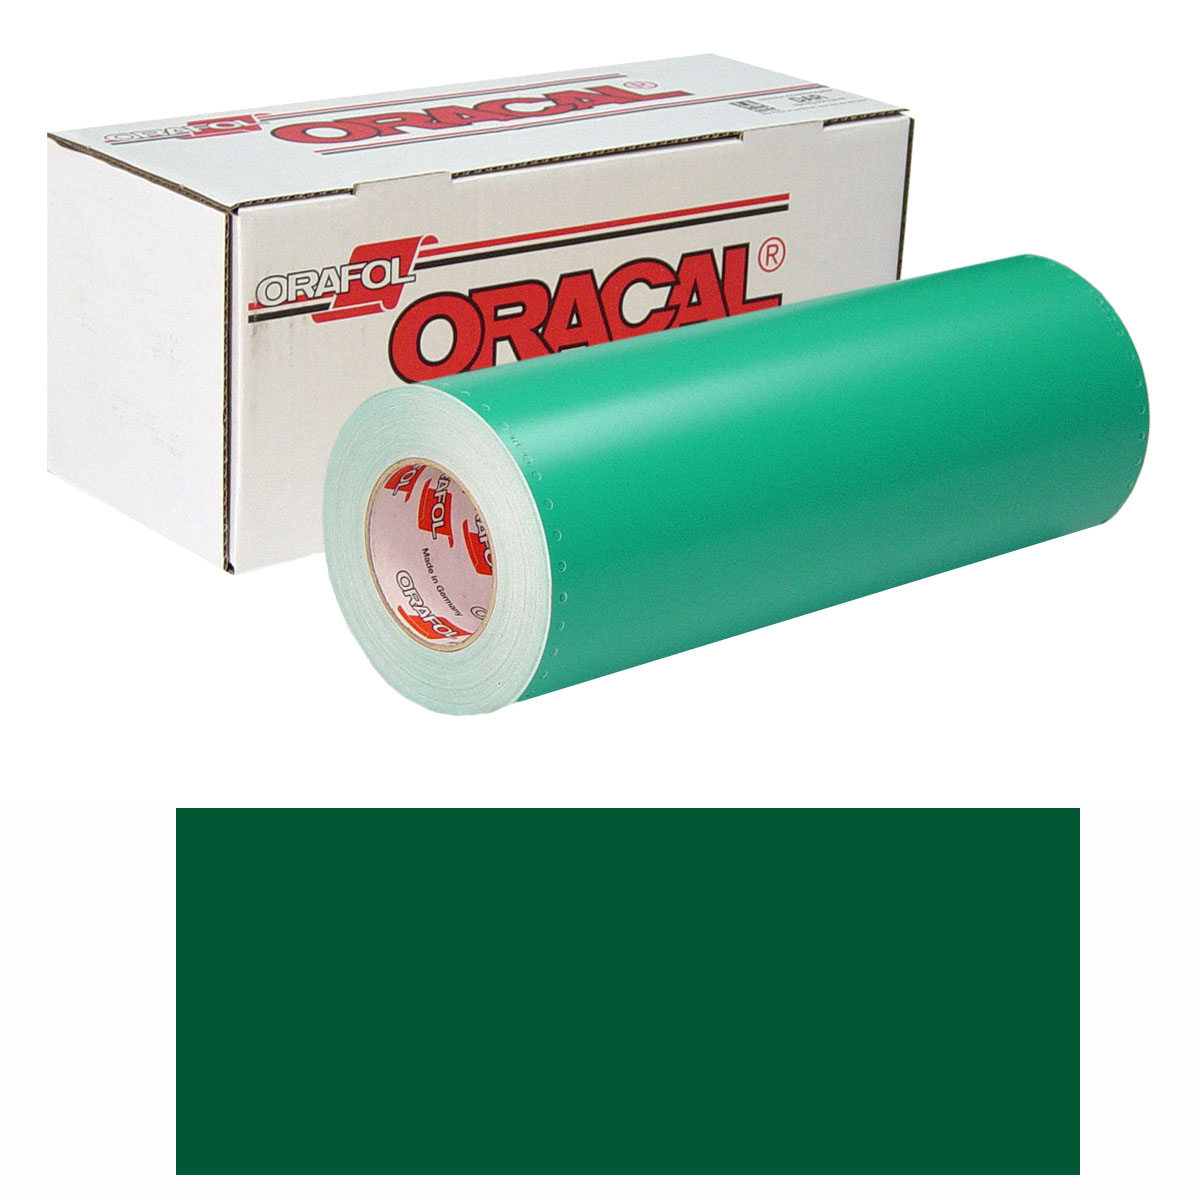 ORACAL 8500 Unp 48In X 50Yd 060 Dark Green